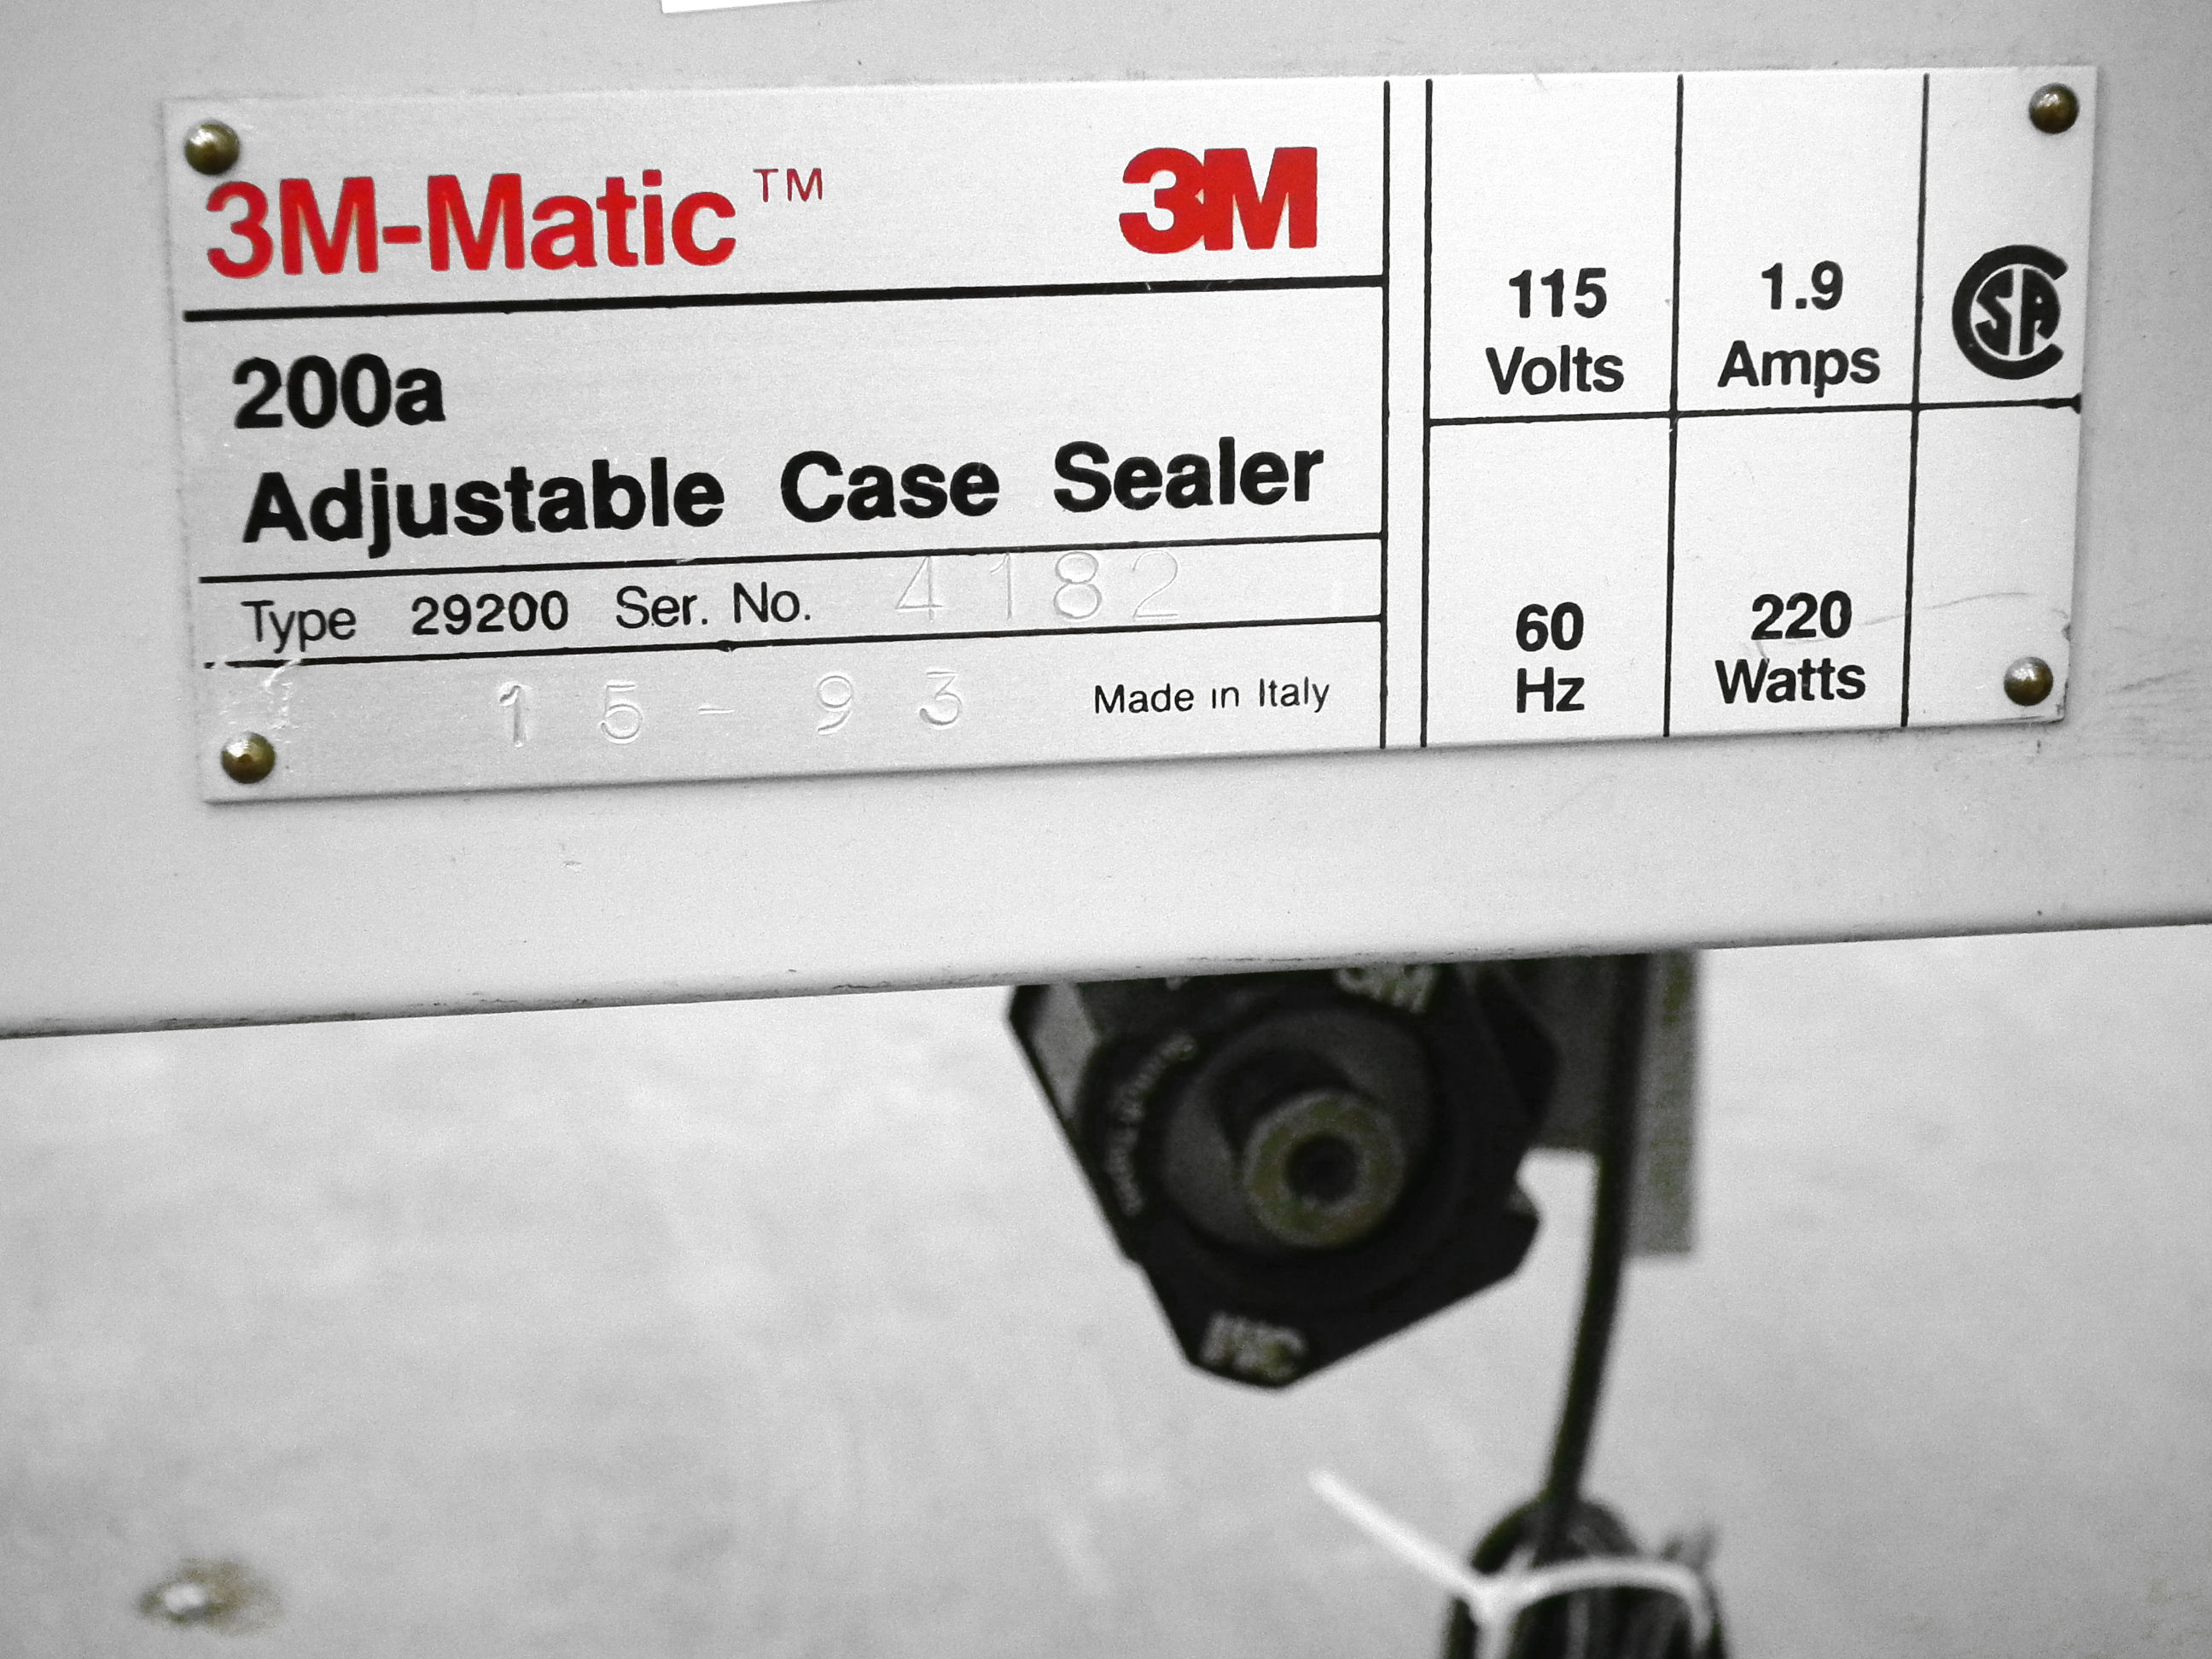 3M Case Taper Top & Bottom Tape Heads Model 200A A3482 - Image 9 of 9